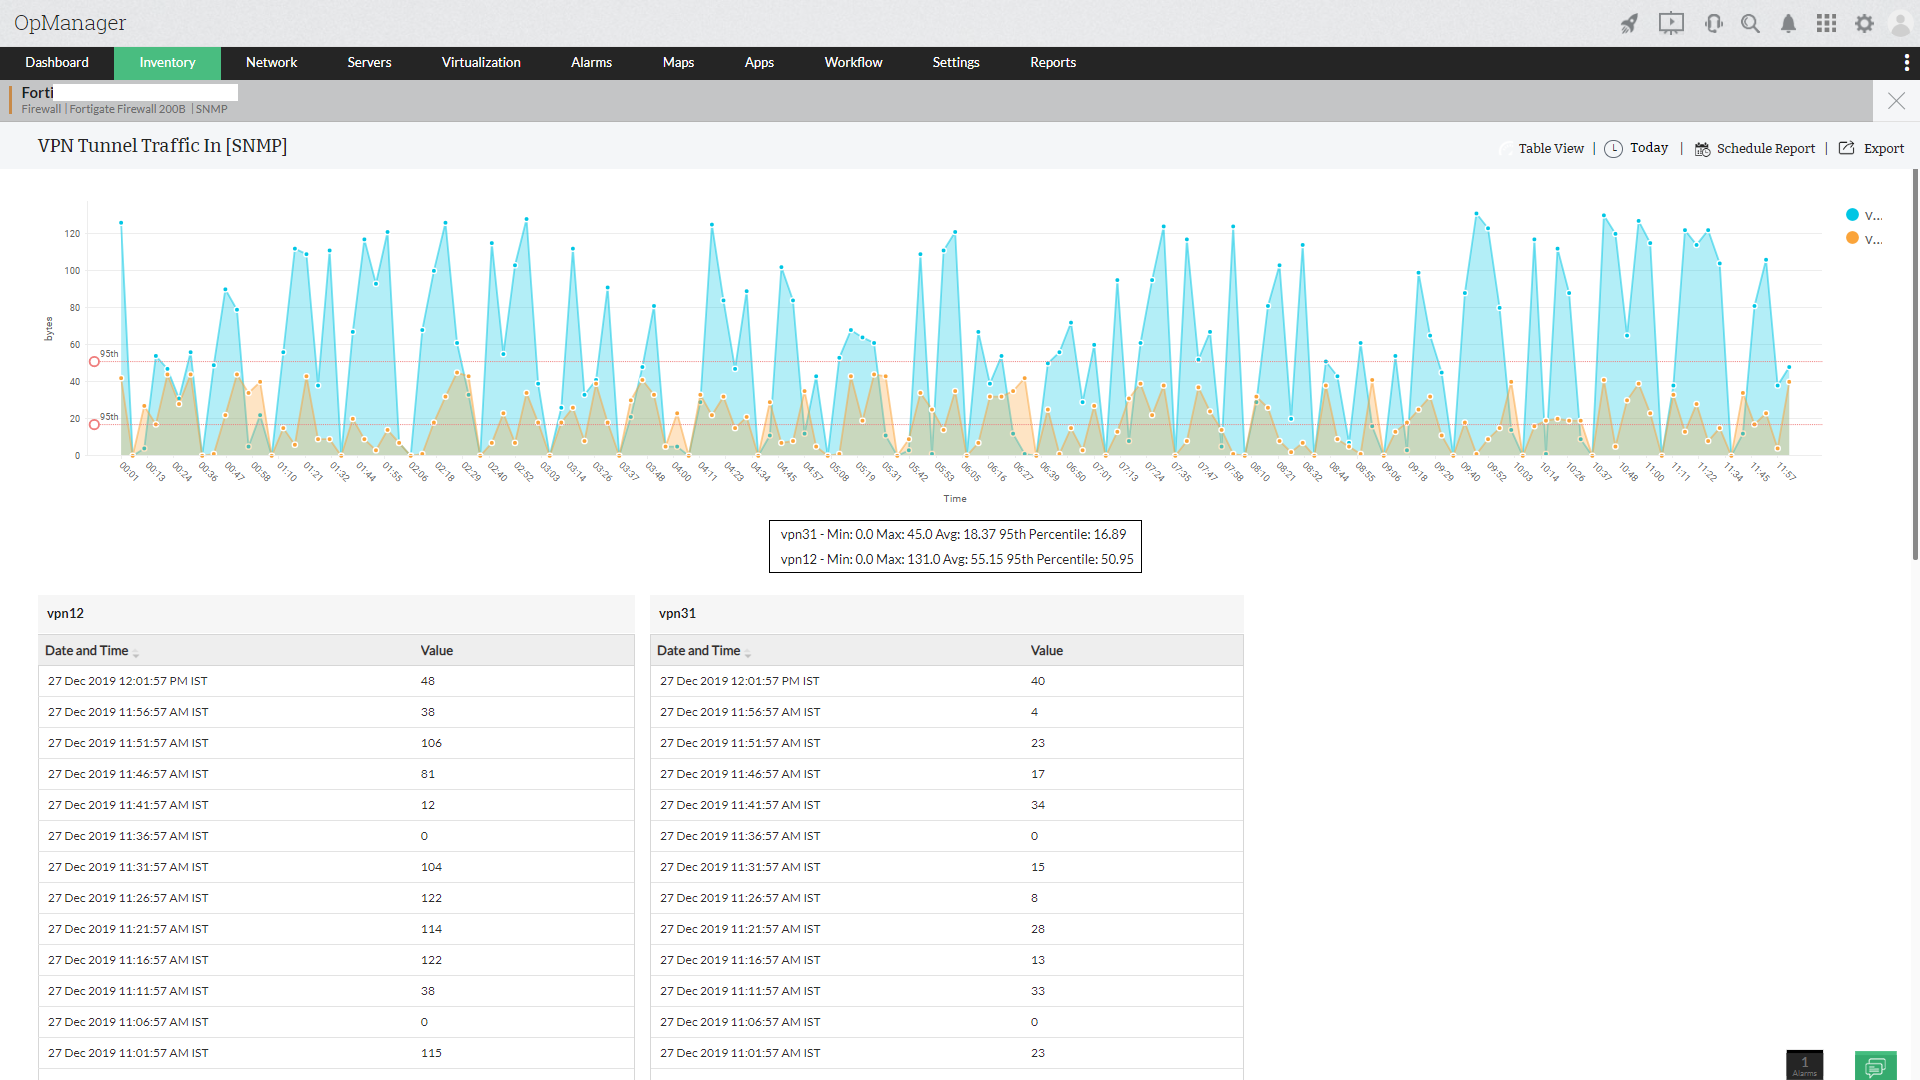 Network Monitor Tool - ManageEngine OpManager